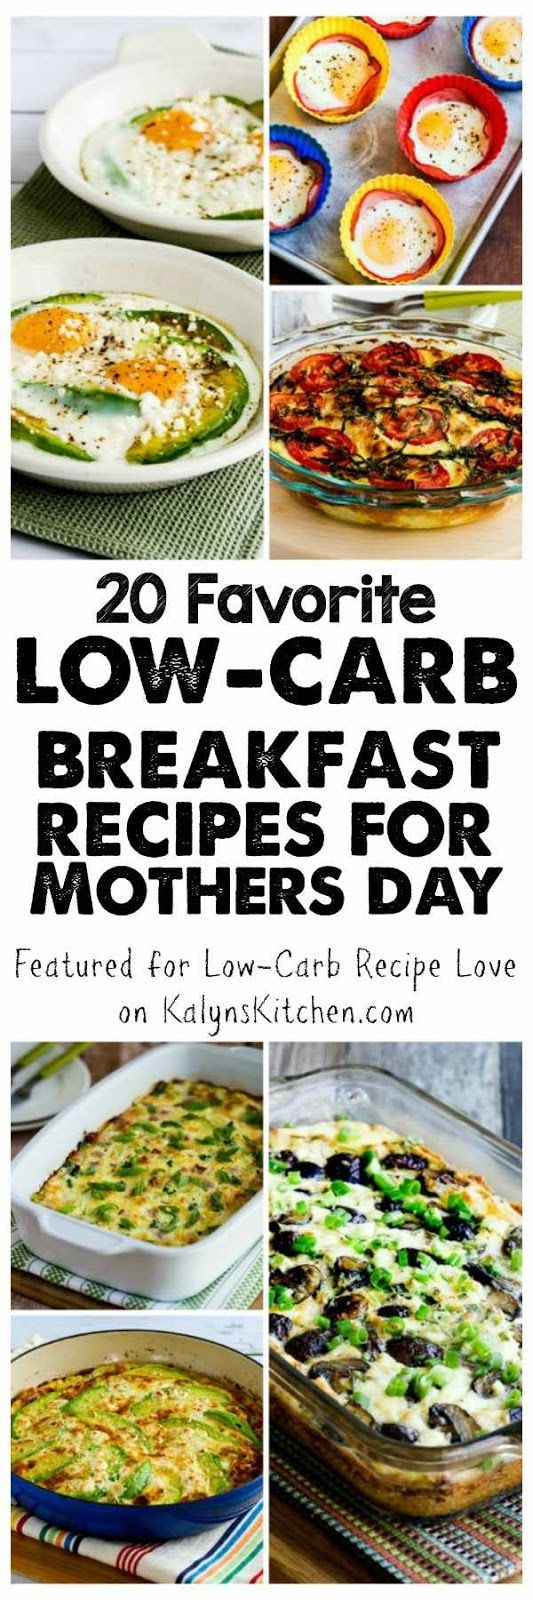 Twenty Favorite Low-Carb Breakfast Recipes for Mother's Day Brunch or any holiday morning or weekend when you're wanting a special breakfast. All the breakfasts are low-carb and low-glycemic; most are also Keto, gluten-free, and South Beach Diet friendly. Check individual recipes for diet type for each recipe. [found on KalynsKitchen.com]